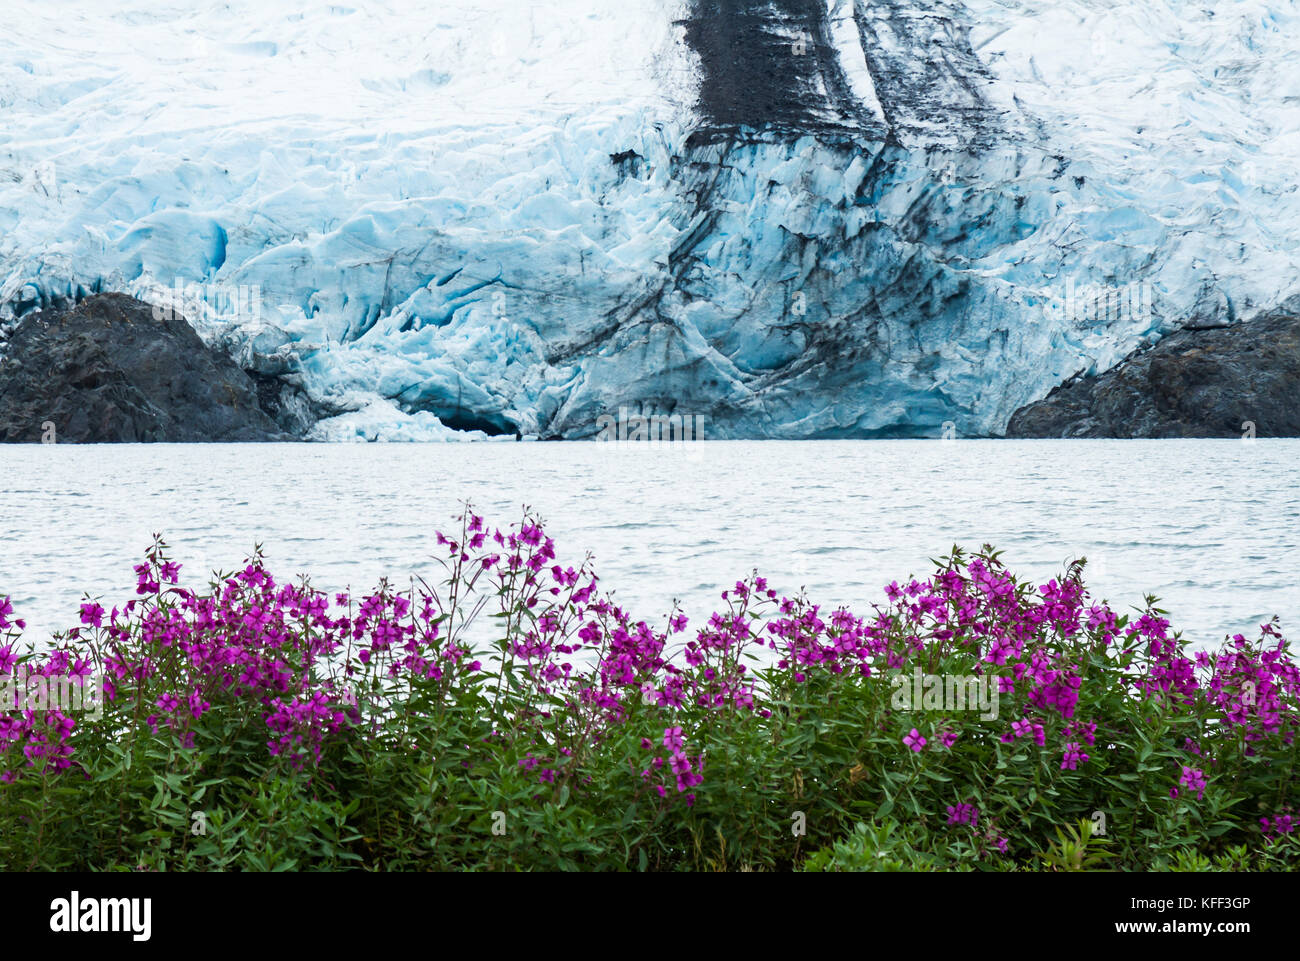 The calving face of Portage Glacier is viewed from the edge of Portage Lake with many pink sweet pea wildflowers - Stock Image